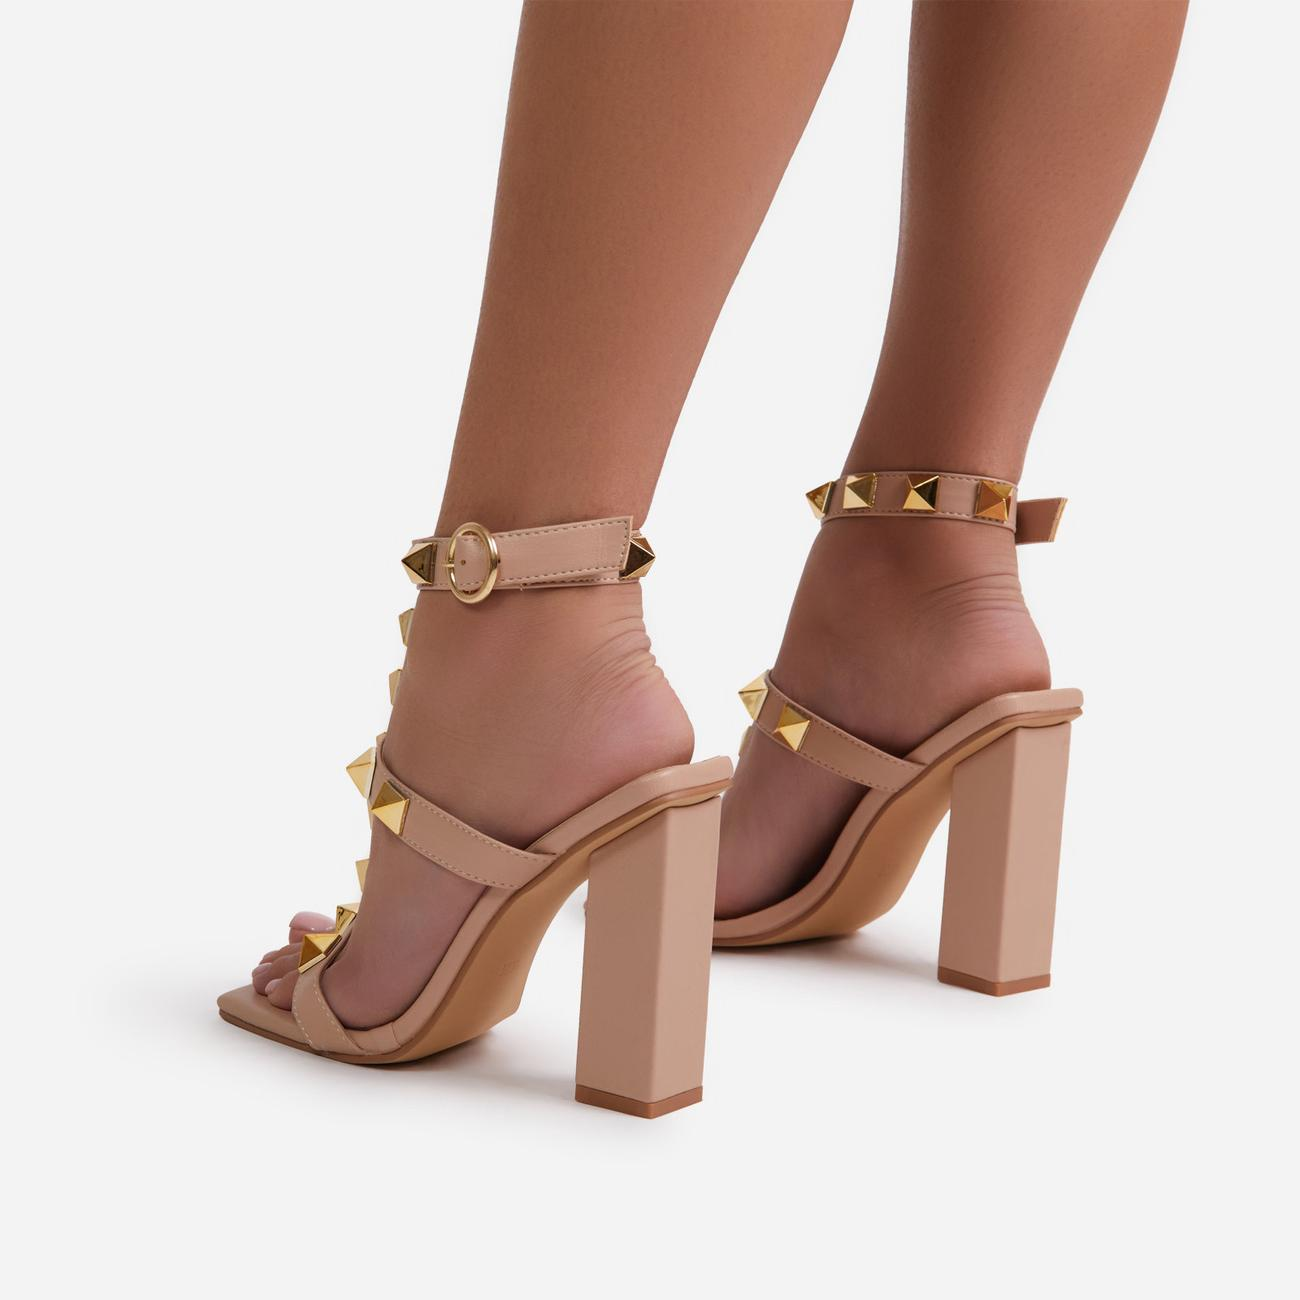 Malaga Studded Detail Caged Square Toe Block Heel In Nude Faux Leather Image 3